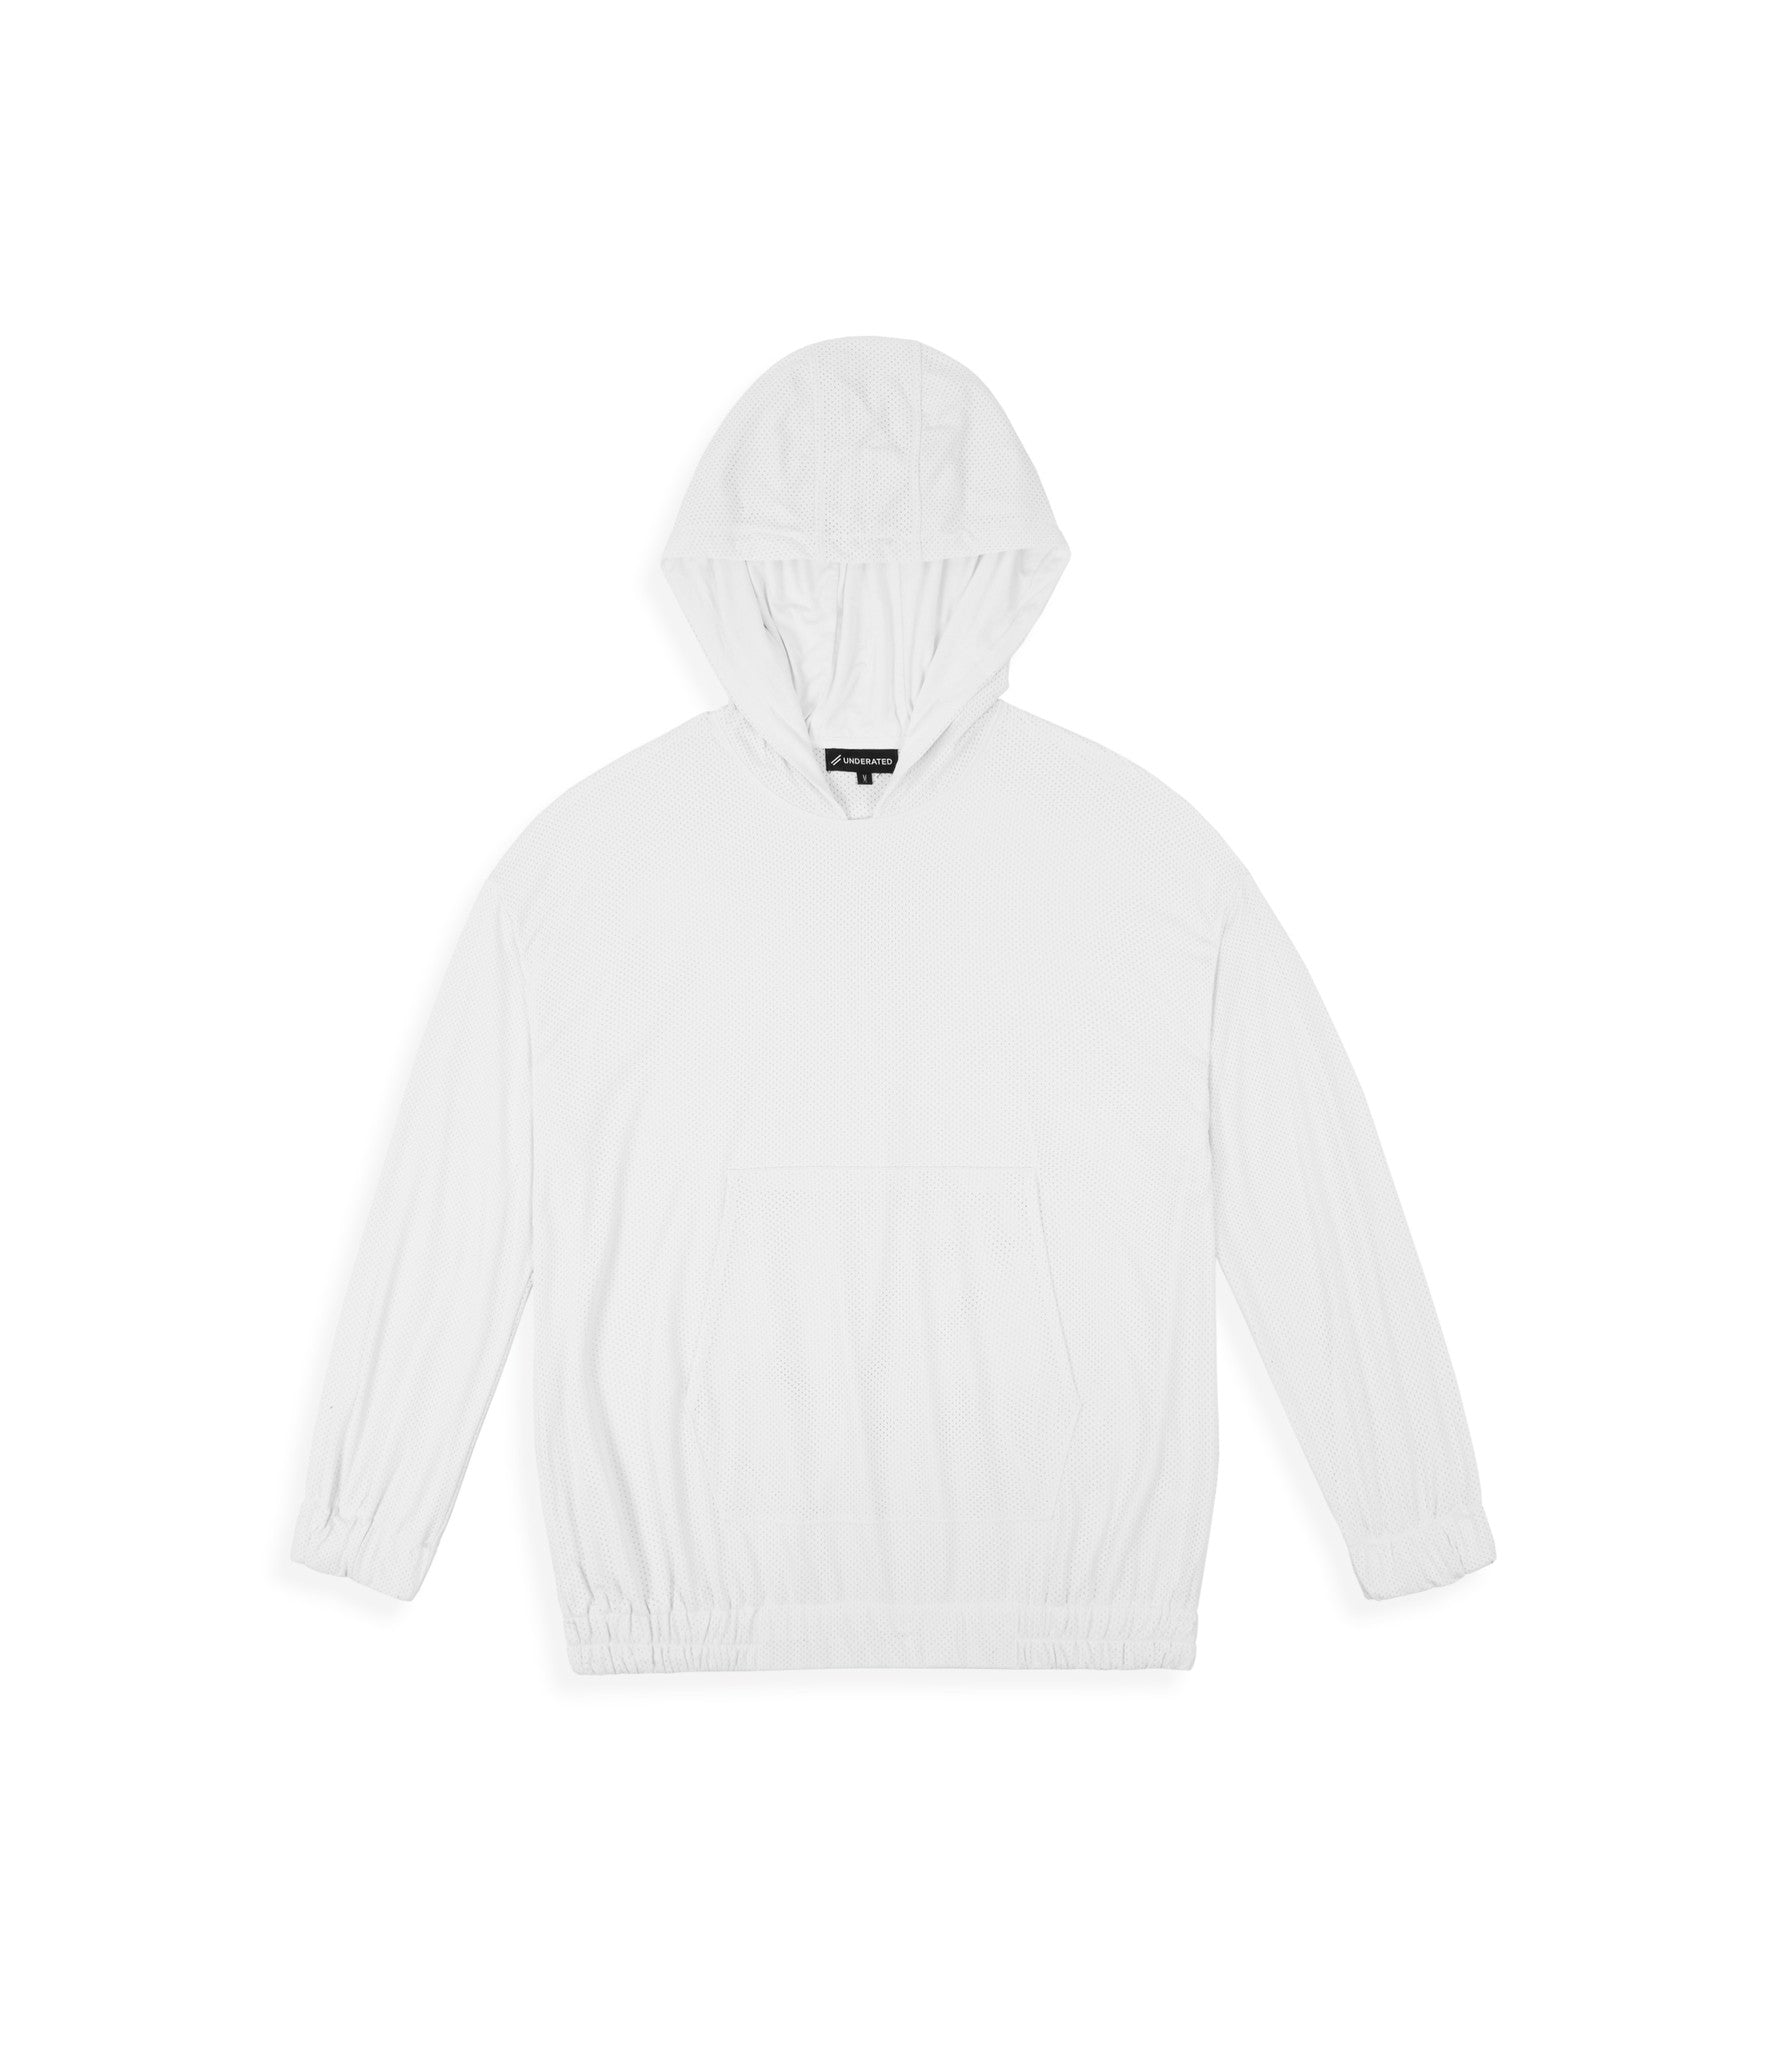 JK281 Exile Airtex Hoody - White - underated london - underatedco - 1